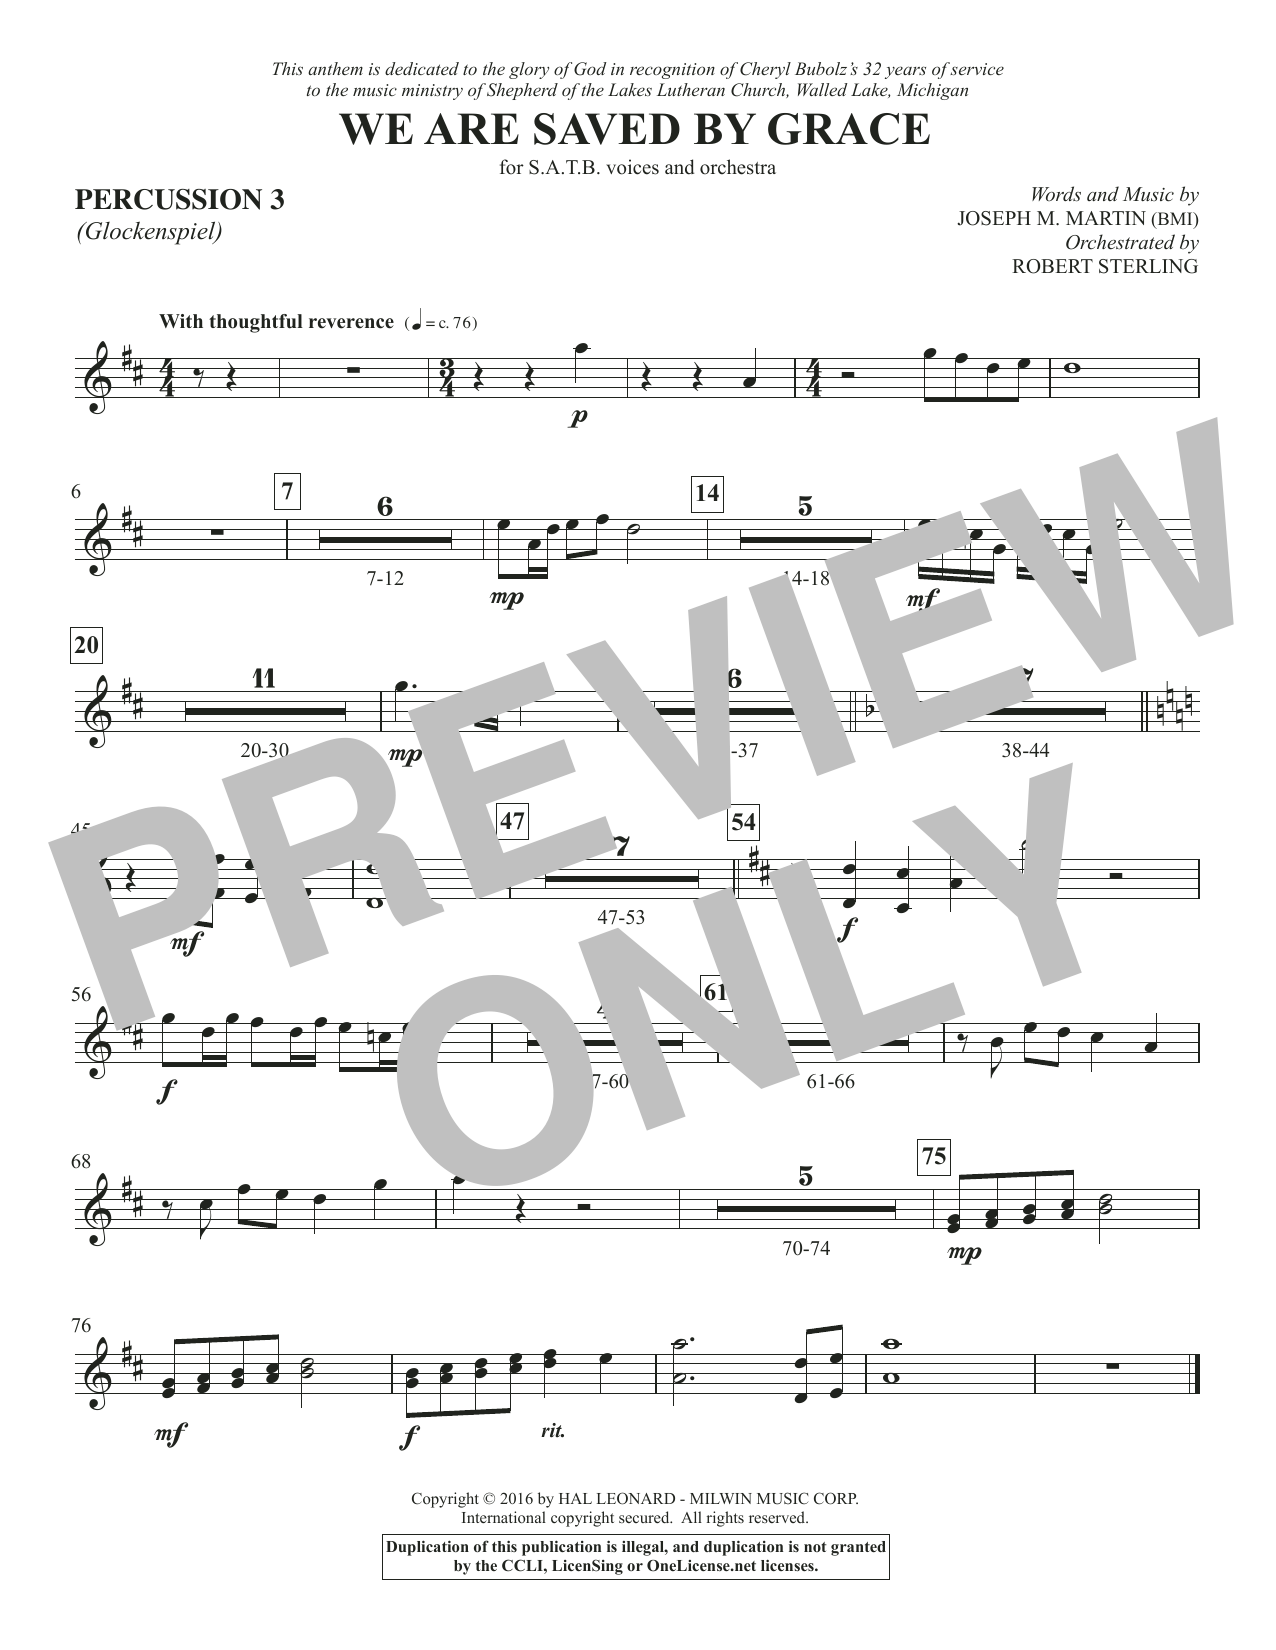 We Are Saved by Grace - Percussion 3 Sheet Music